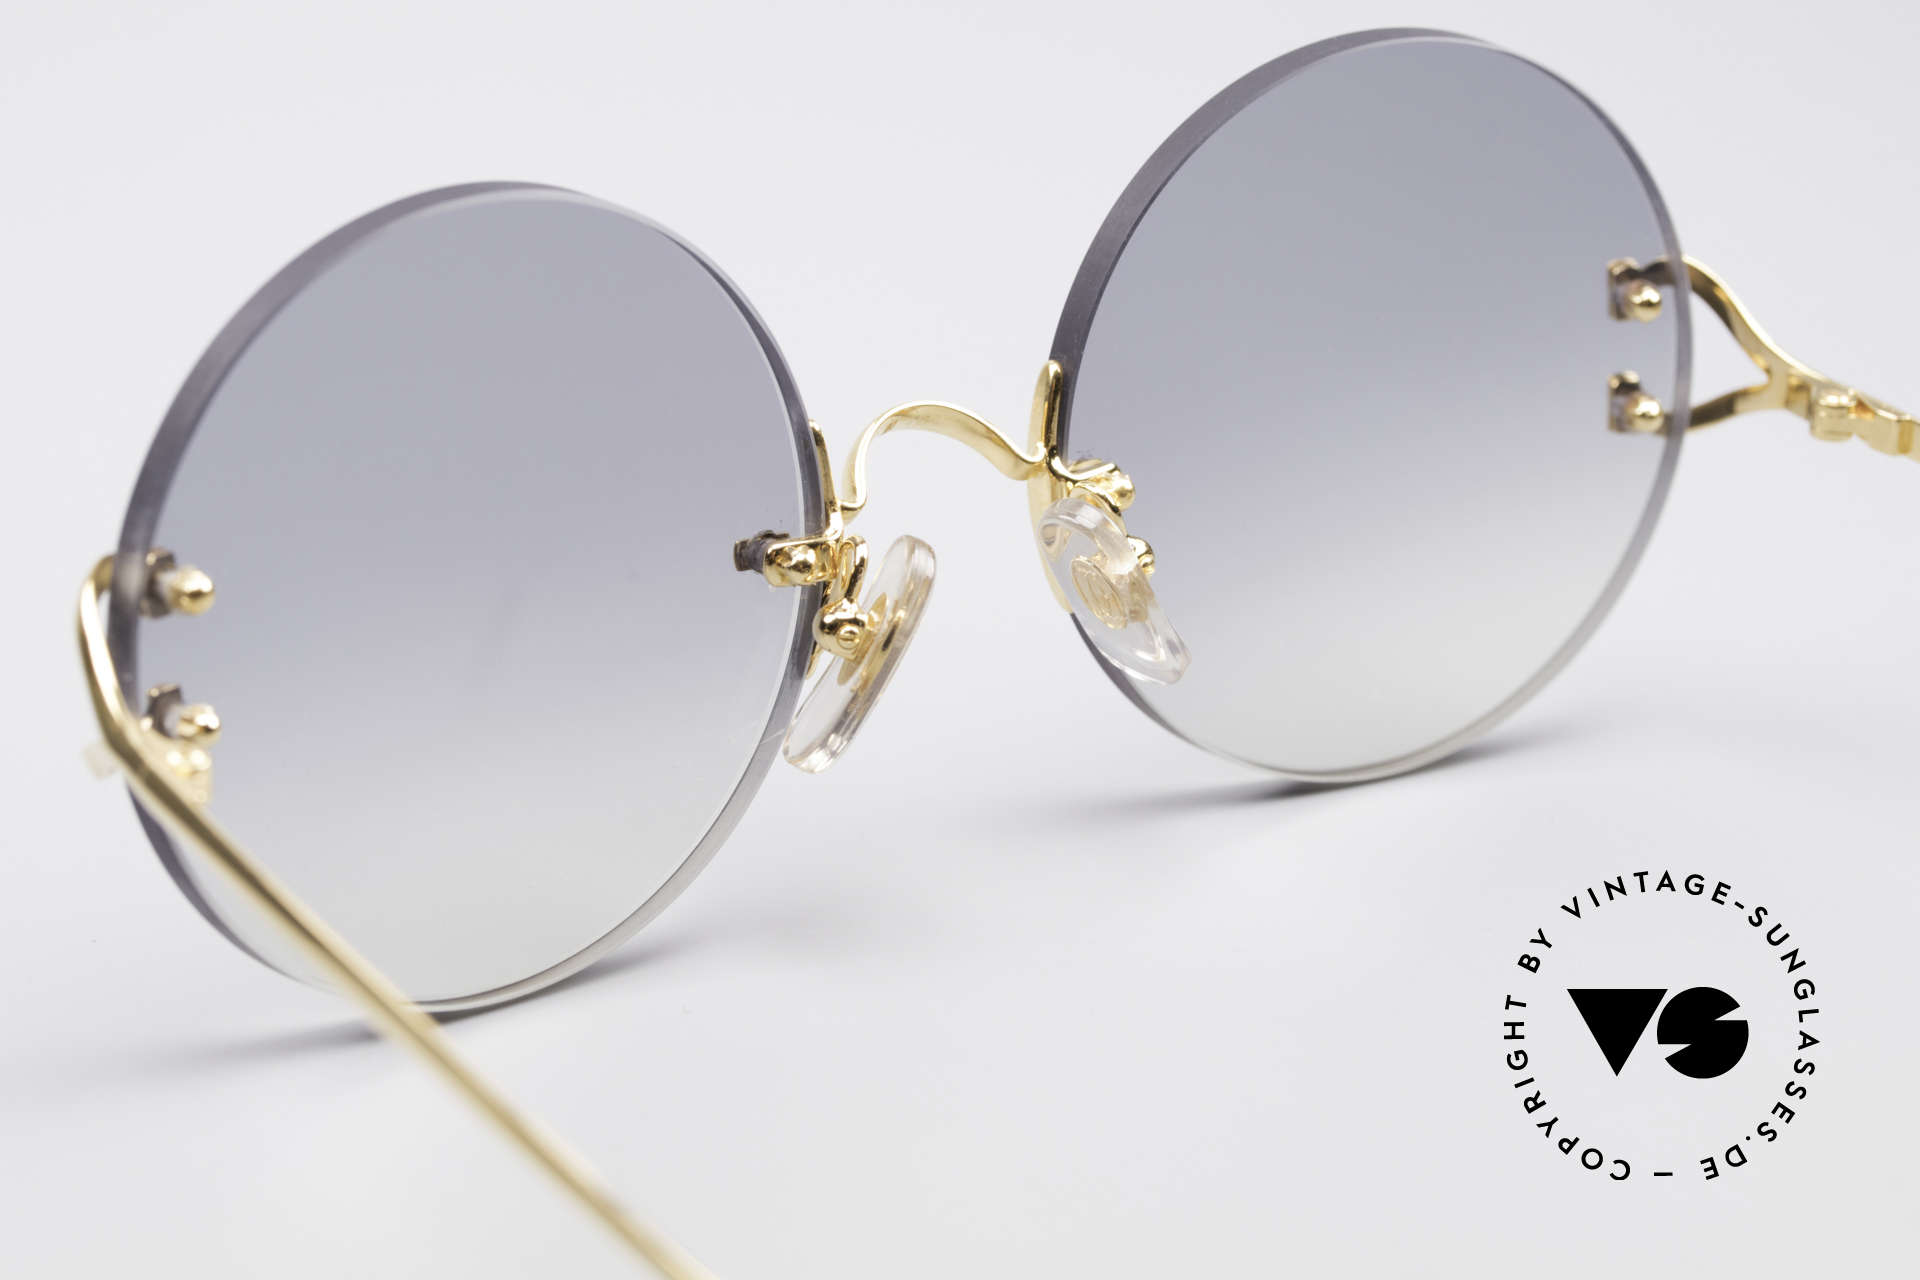 Cartier Madison Round Rimless Sunglasses, NO retro sunglasses, but a rare old Cartier ORIGINAL, Made for Men and Women